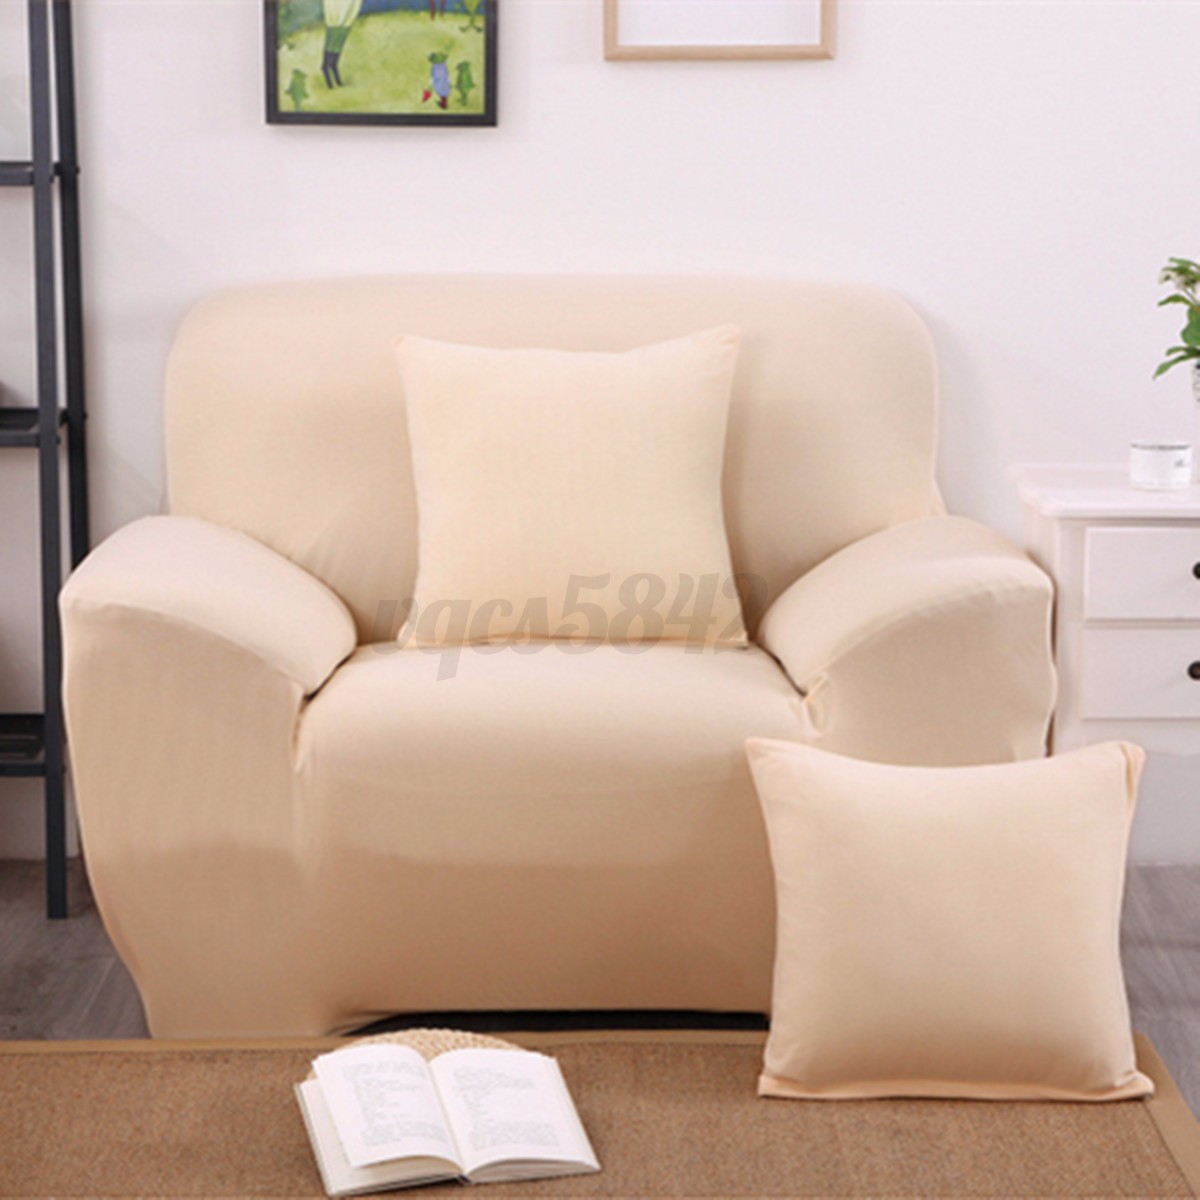 Sofa Set Covers For L Shape 1 2 3 Seat L Shape Sectional Sofa Couch Cover Stretch